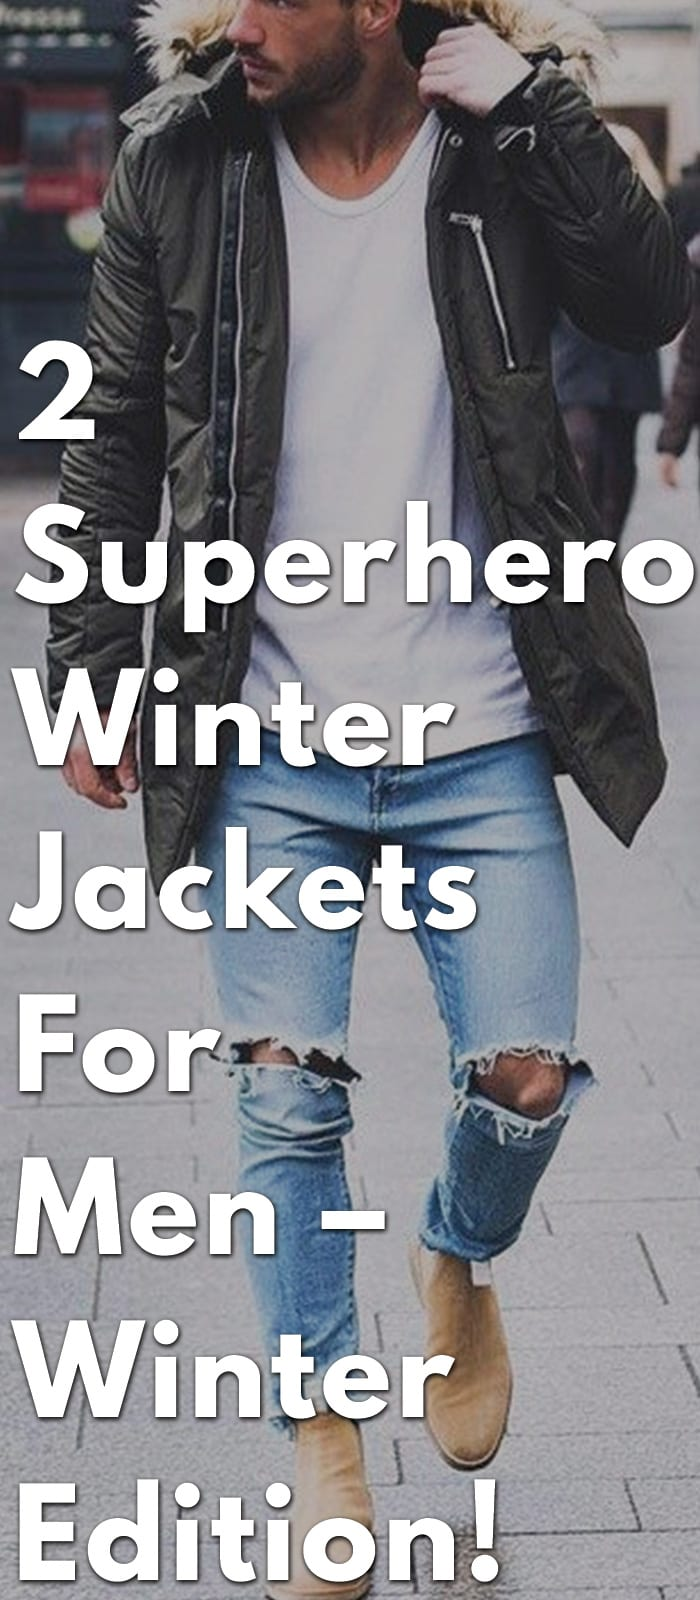 2-Superhero-Winter-Jackets-For-Men-Winter-Edition!